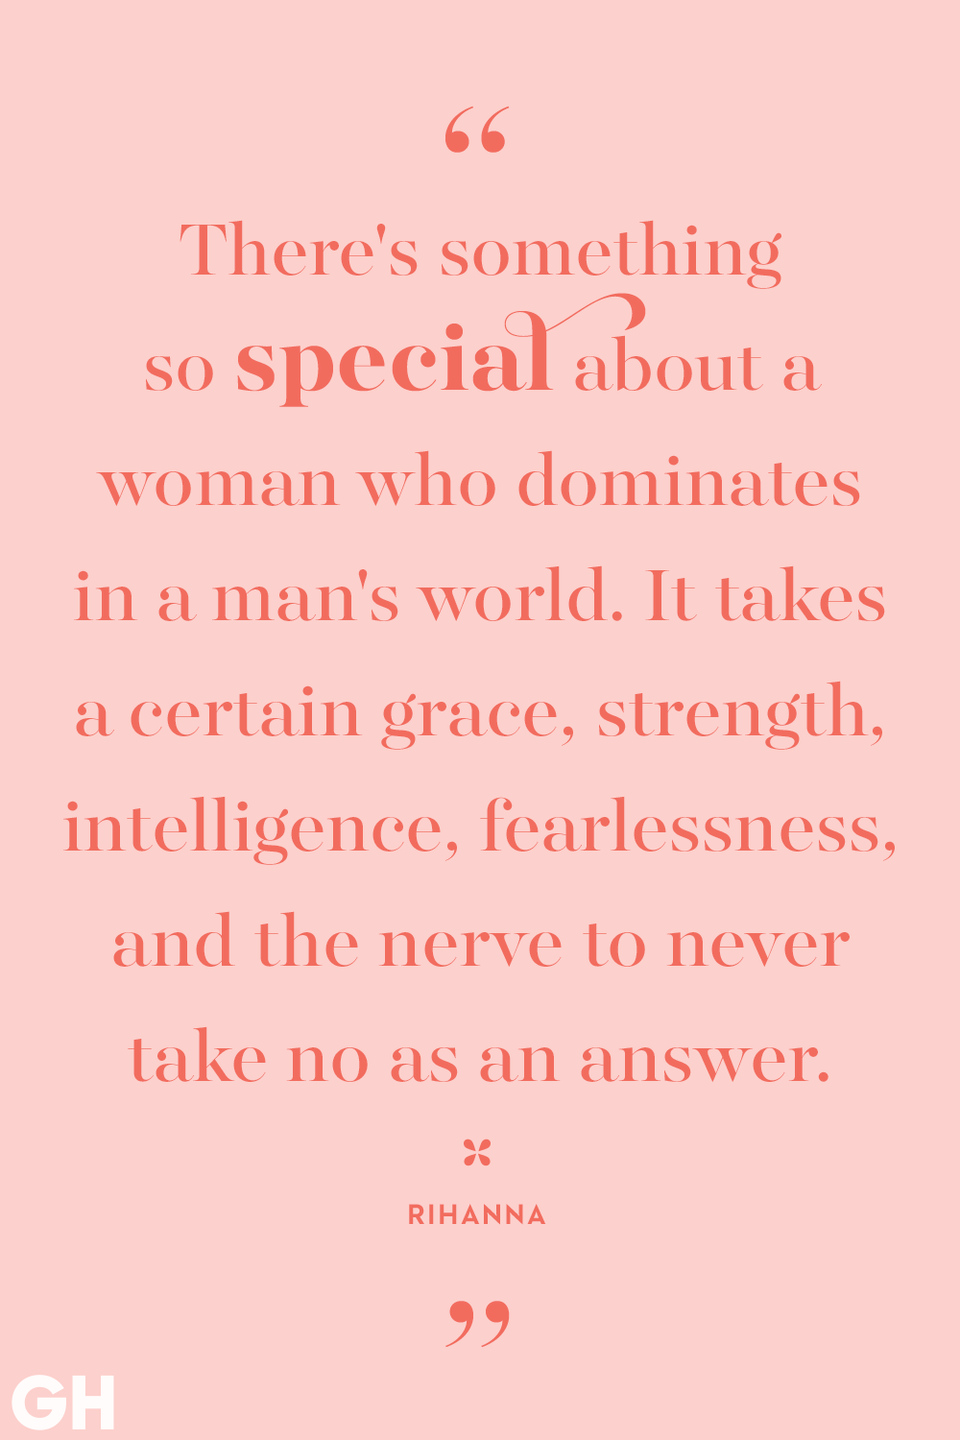 <p>There's something so special about a woman who dominates in a man's world. It takes a certain grace, strength, intelligence, fearlessness, and the nerve to never take no for an answer.</p>